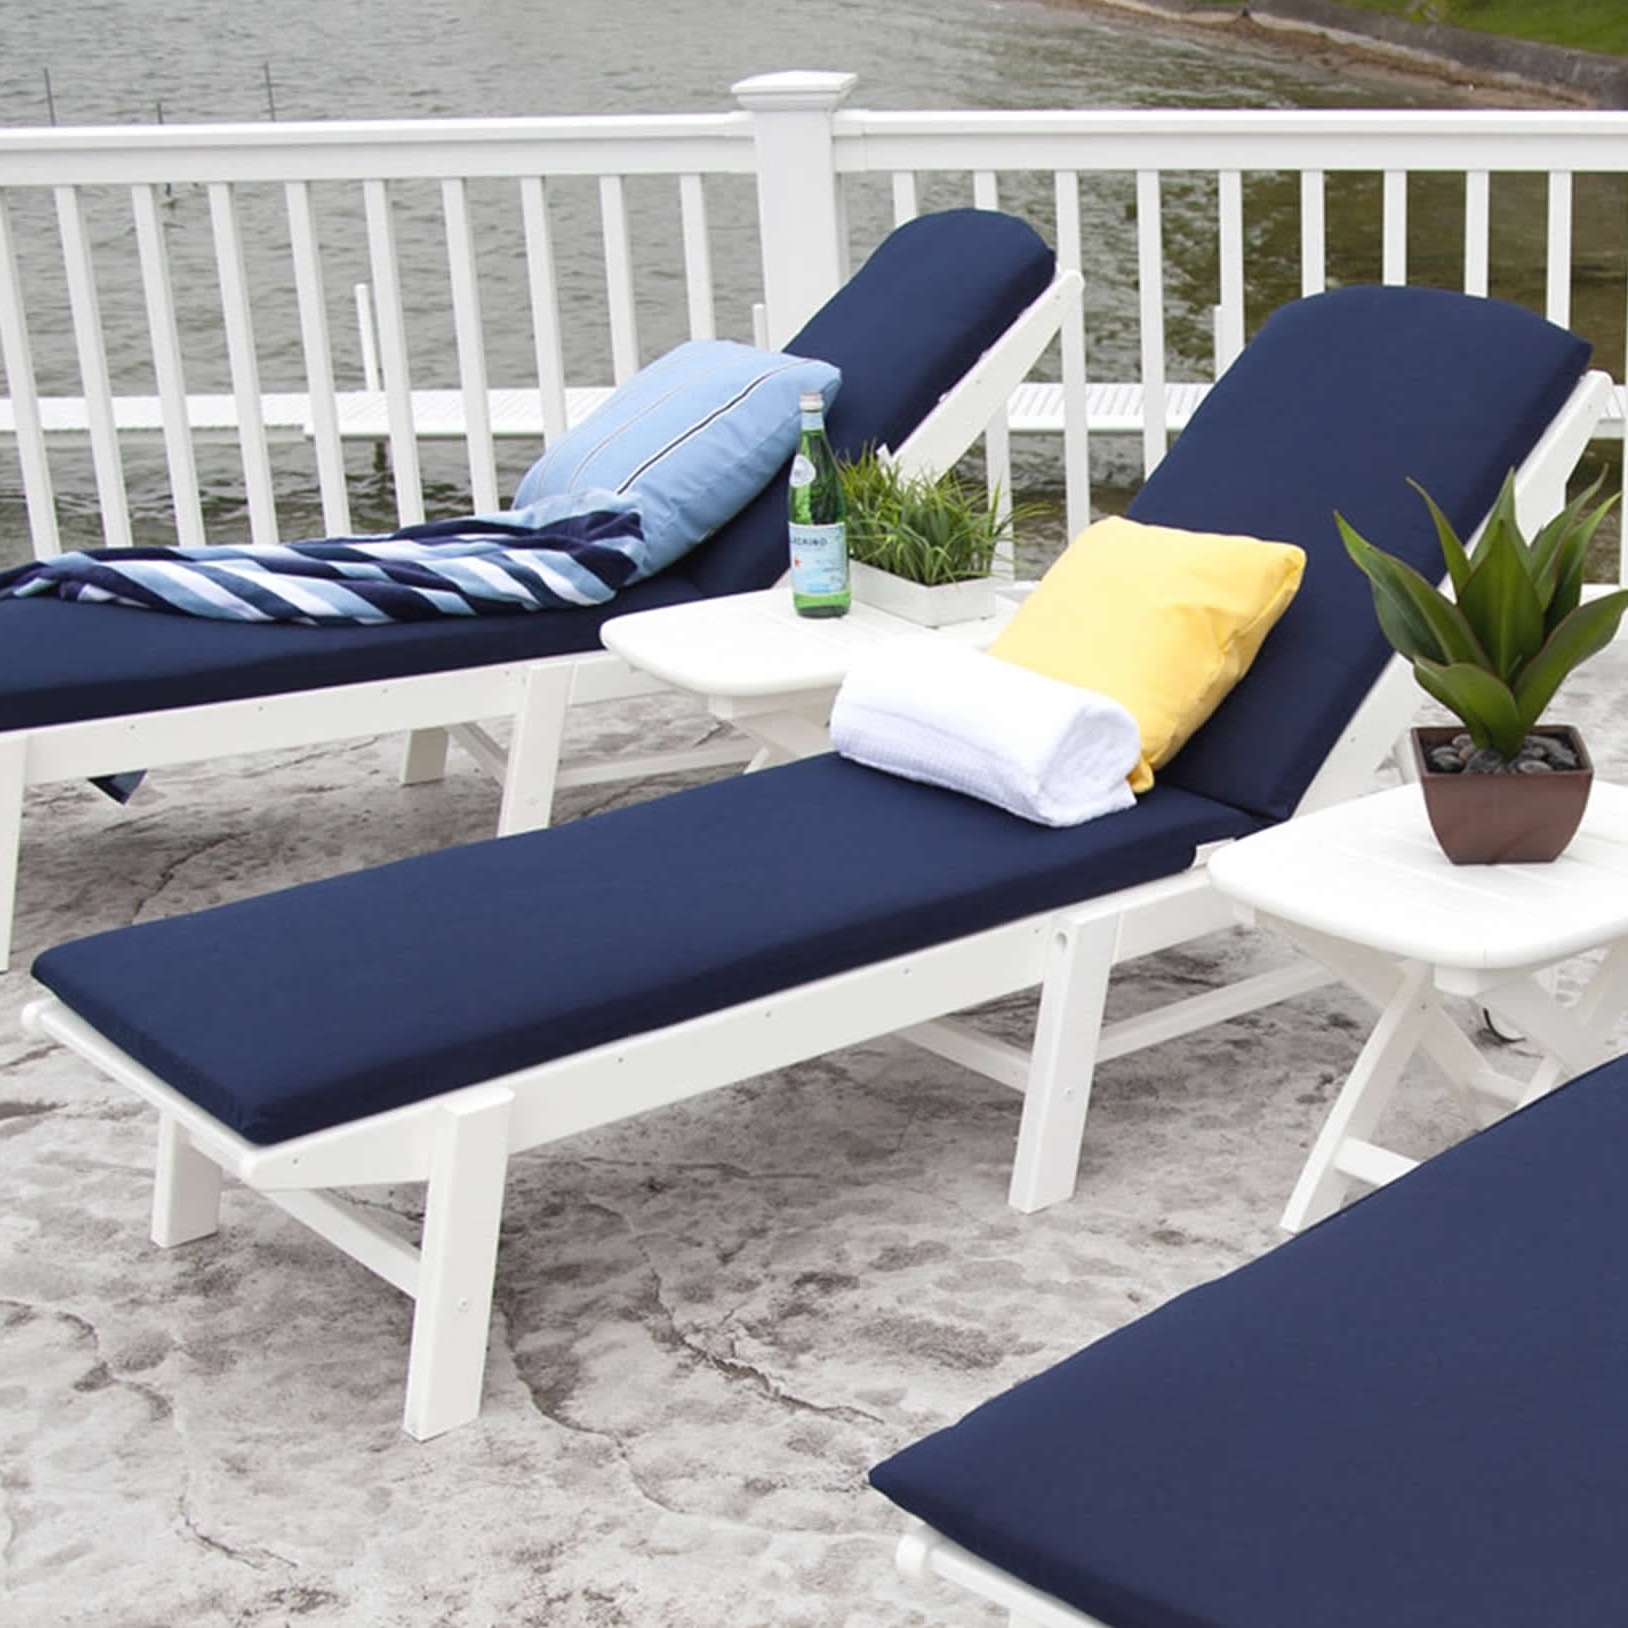 Chaise Lounge Cushions Within Trendy Polywood Nautical Chaise Lounge Cushions (View 4 of 15)